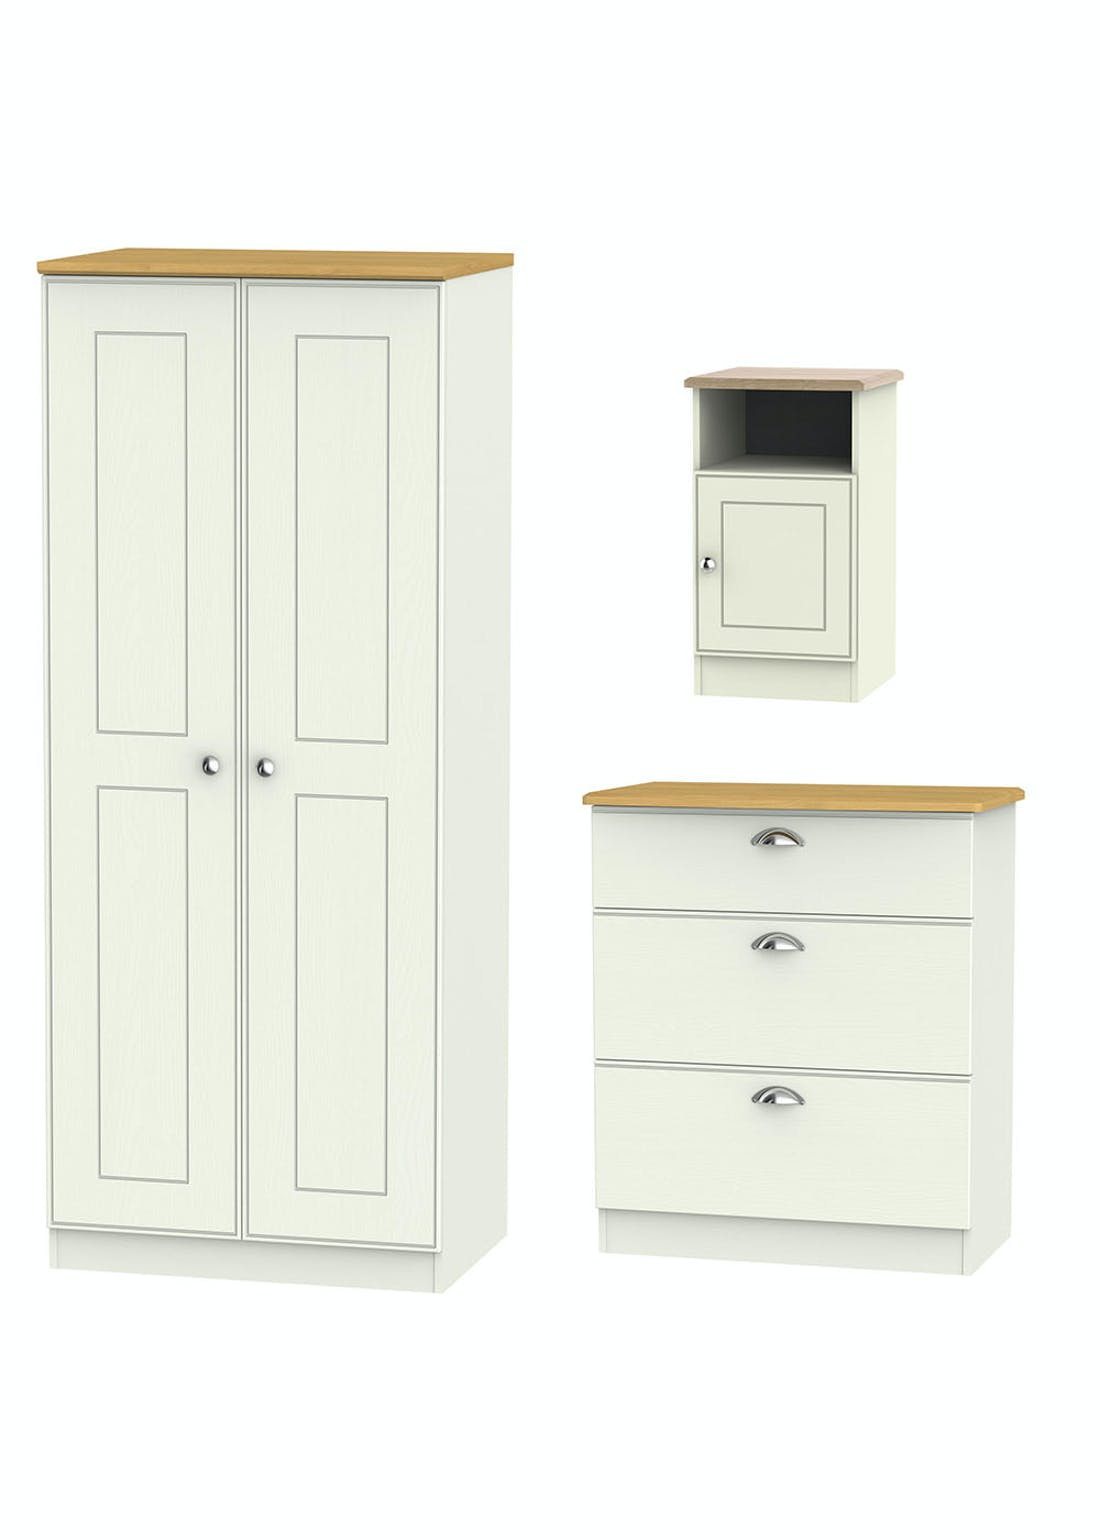 Swift Stamford 3 Piece Bedroom Furniture Collection